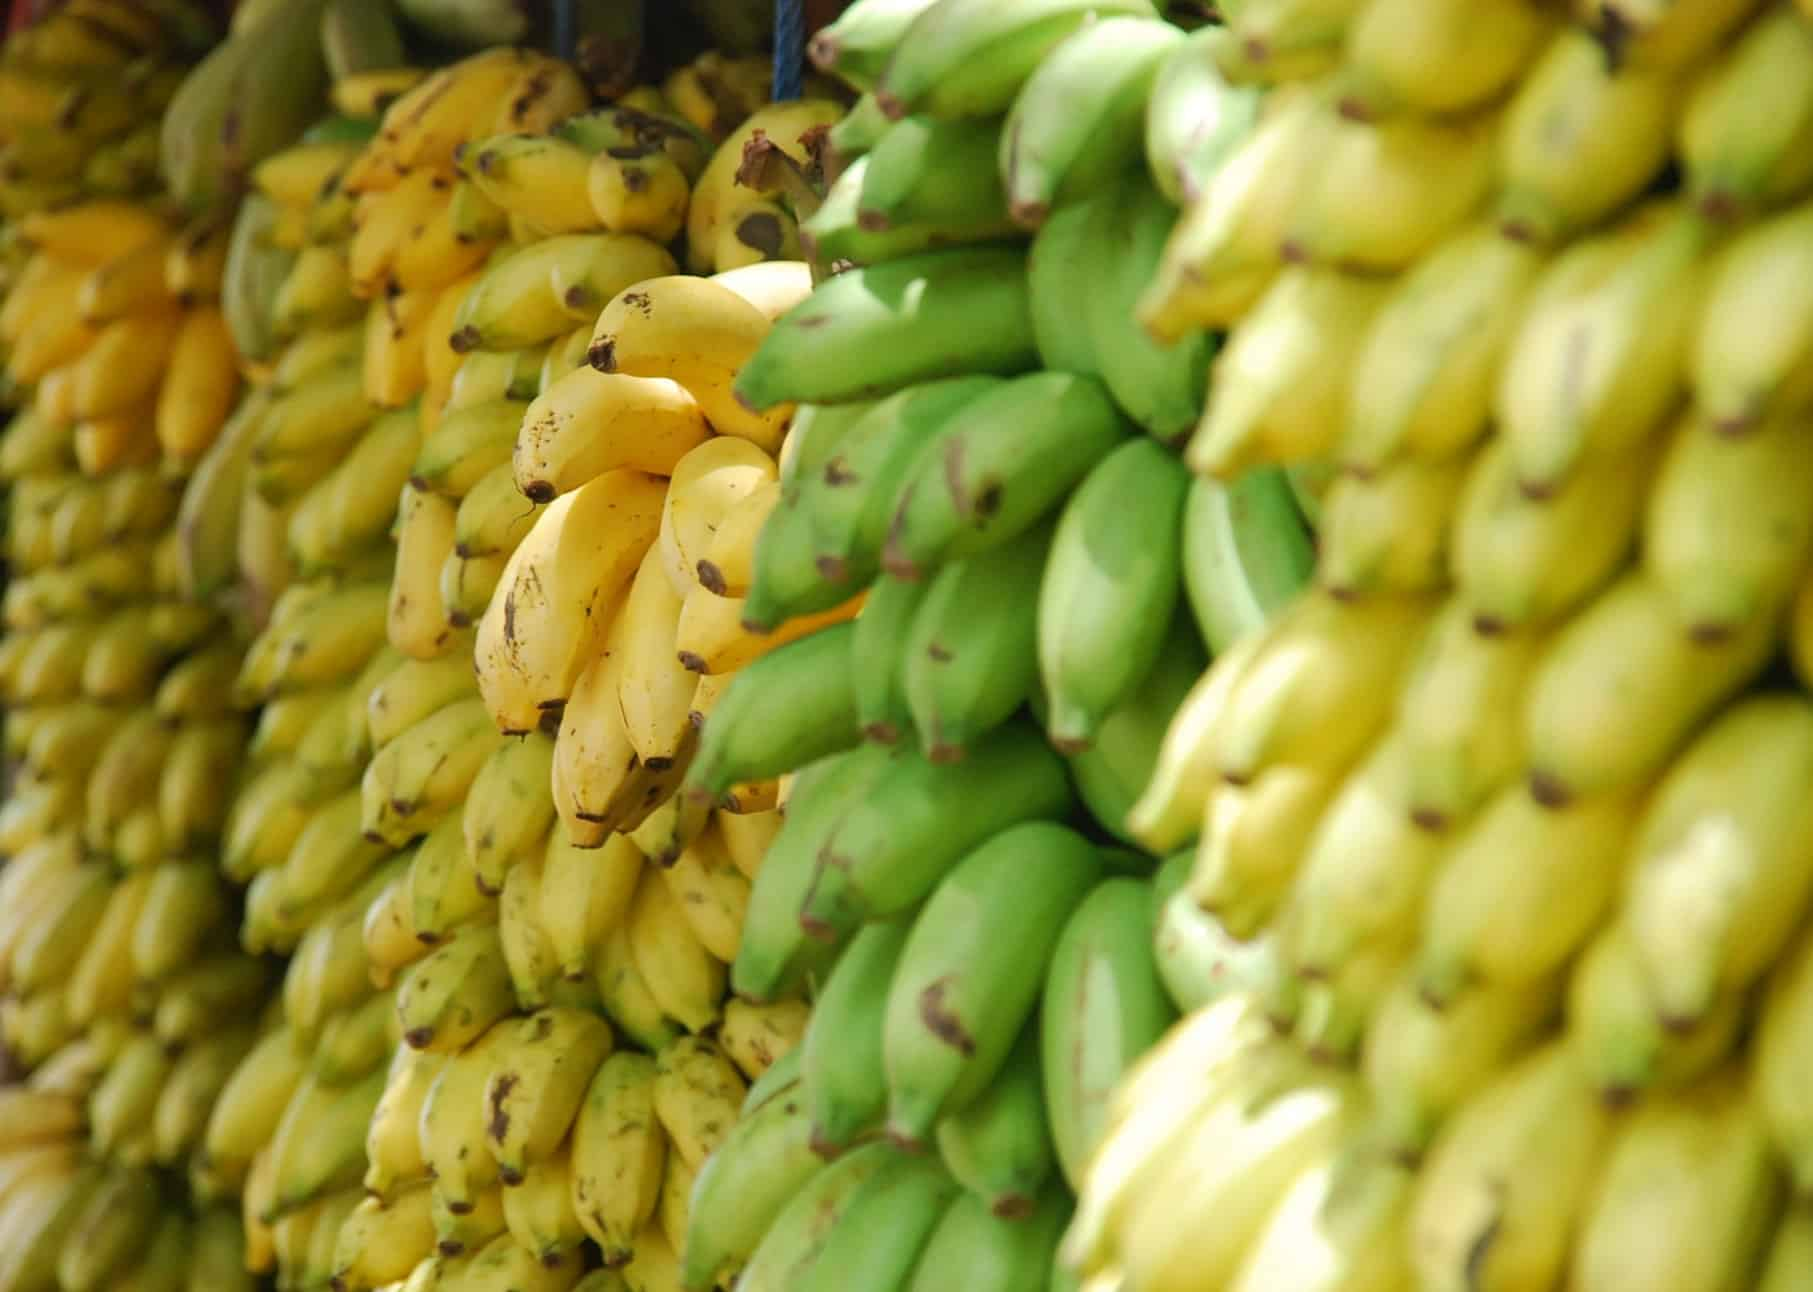 Banana, Unripe and ripe, Green bananas